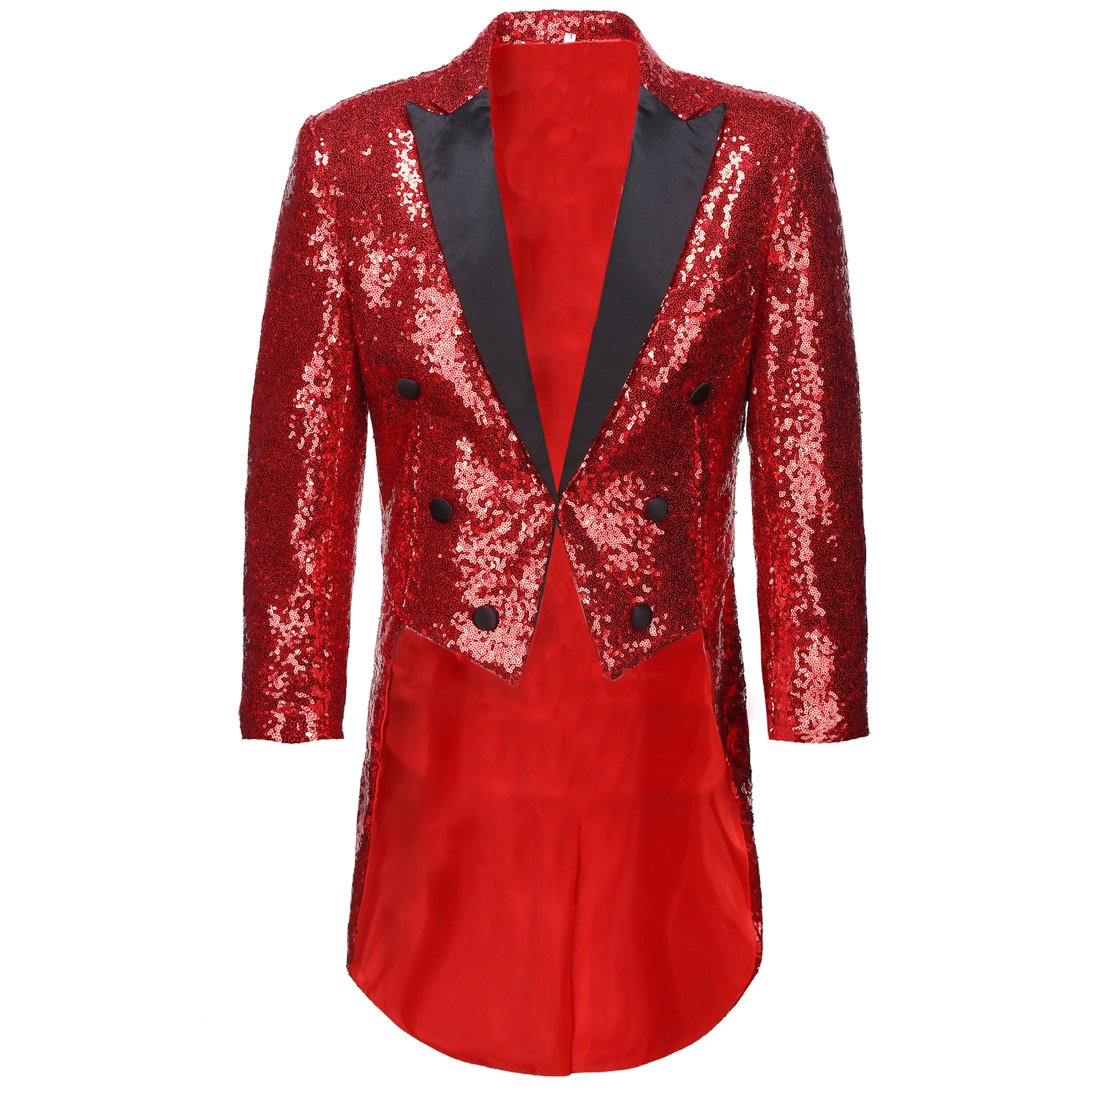 CARFFIV Mens Slim Fit Sequins Tailcoat Suit Jacket (Red, XL/38R) by CARFFIV